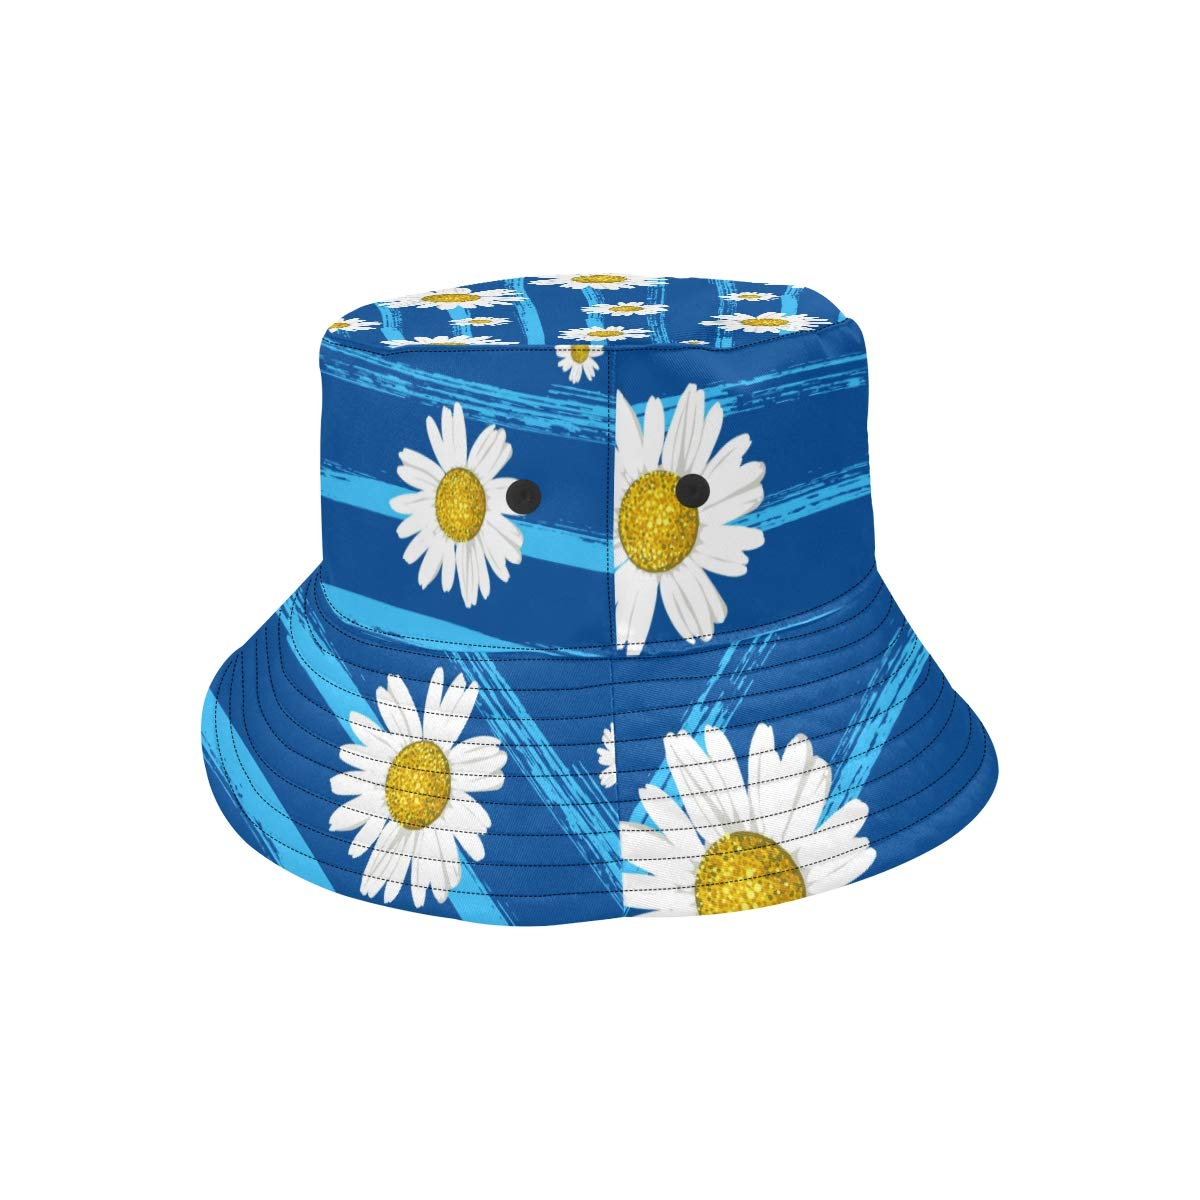 Floral Golden White Yellow Love Daisy New Summer Unisex Cotton Fashion Fishing Sun Bucket Hats for Kid Teens Women and Men with Customize Top Packable Fisherman Cap for Outdoor Travel